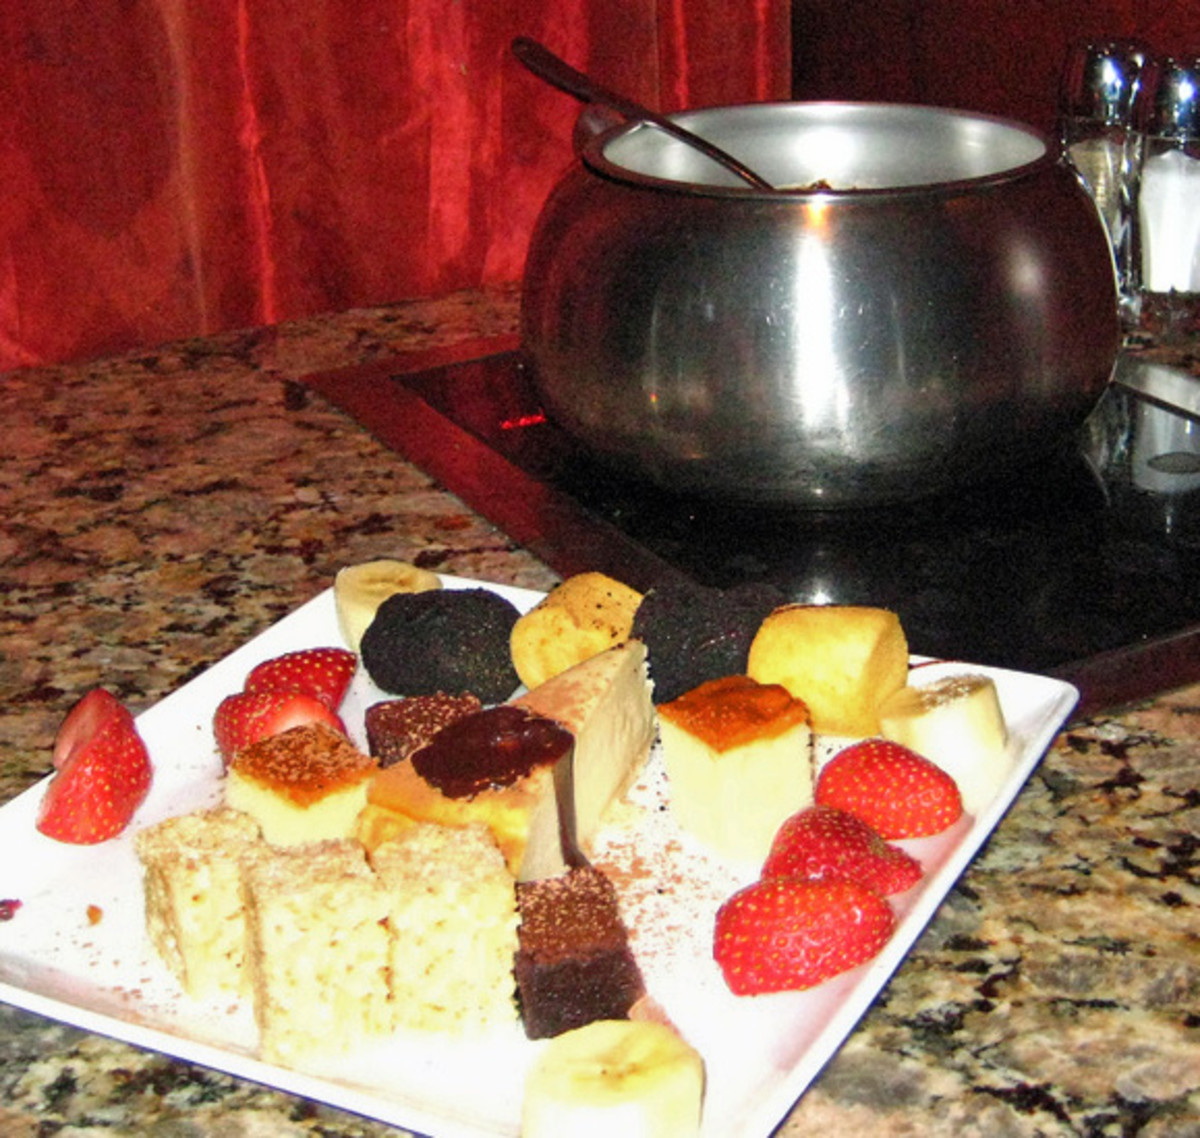 A pot of warm dark chocolate fondue with strawberries and cake squares for dipping